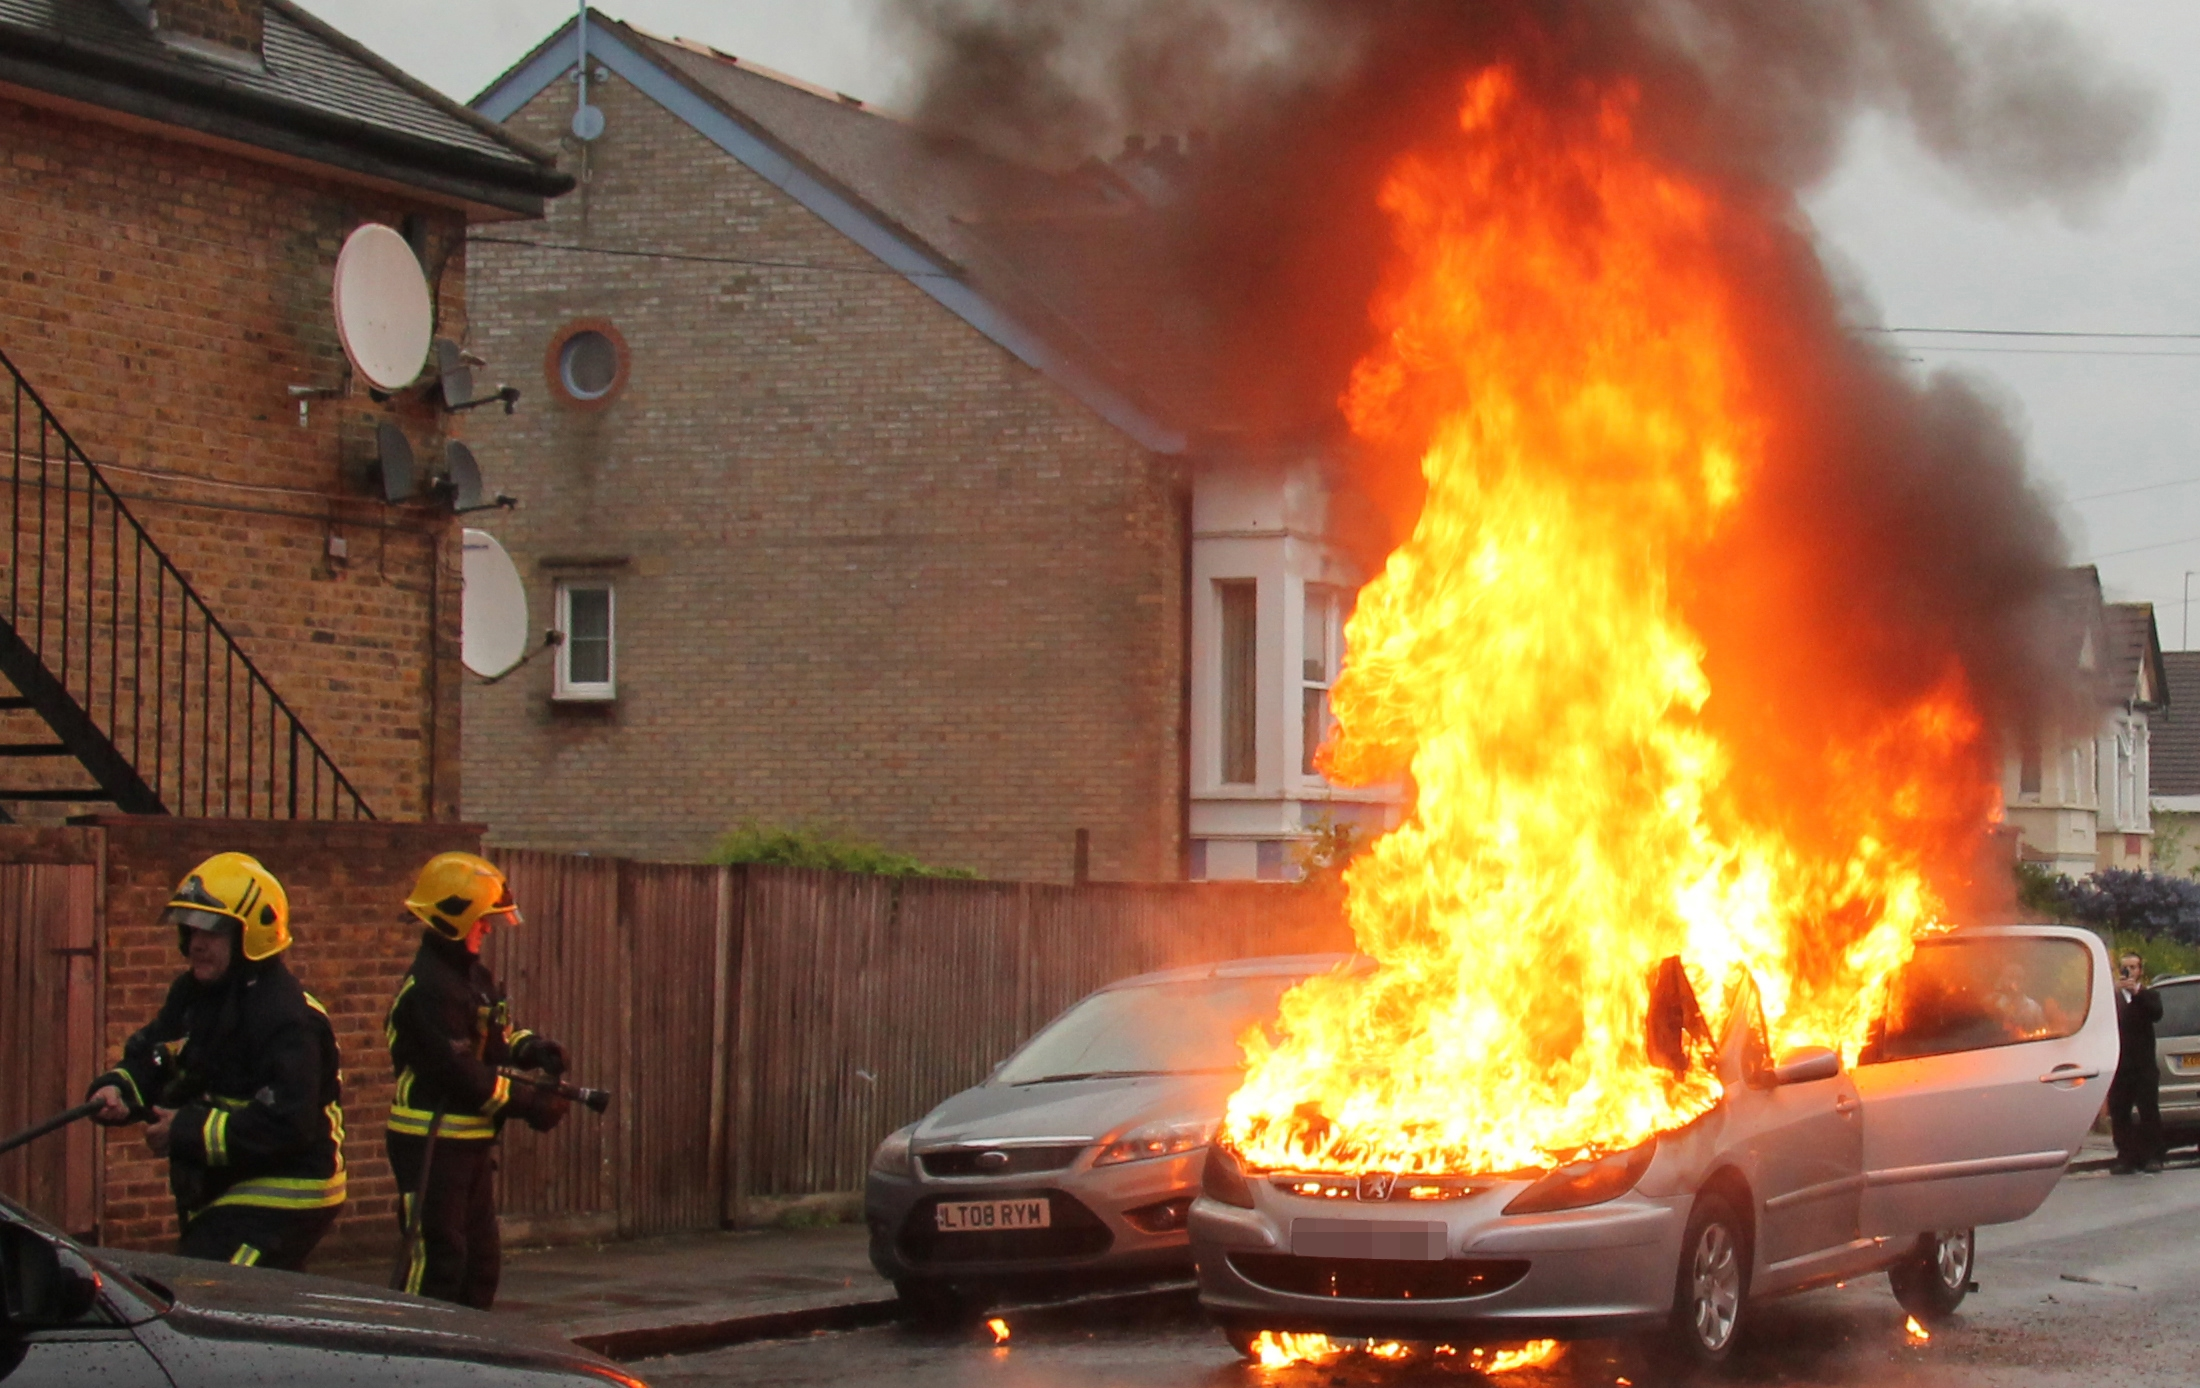 Firefighters arrived within minutes to extinguish the flames after the baby and the elderly man had been pulled from the car